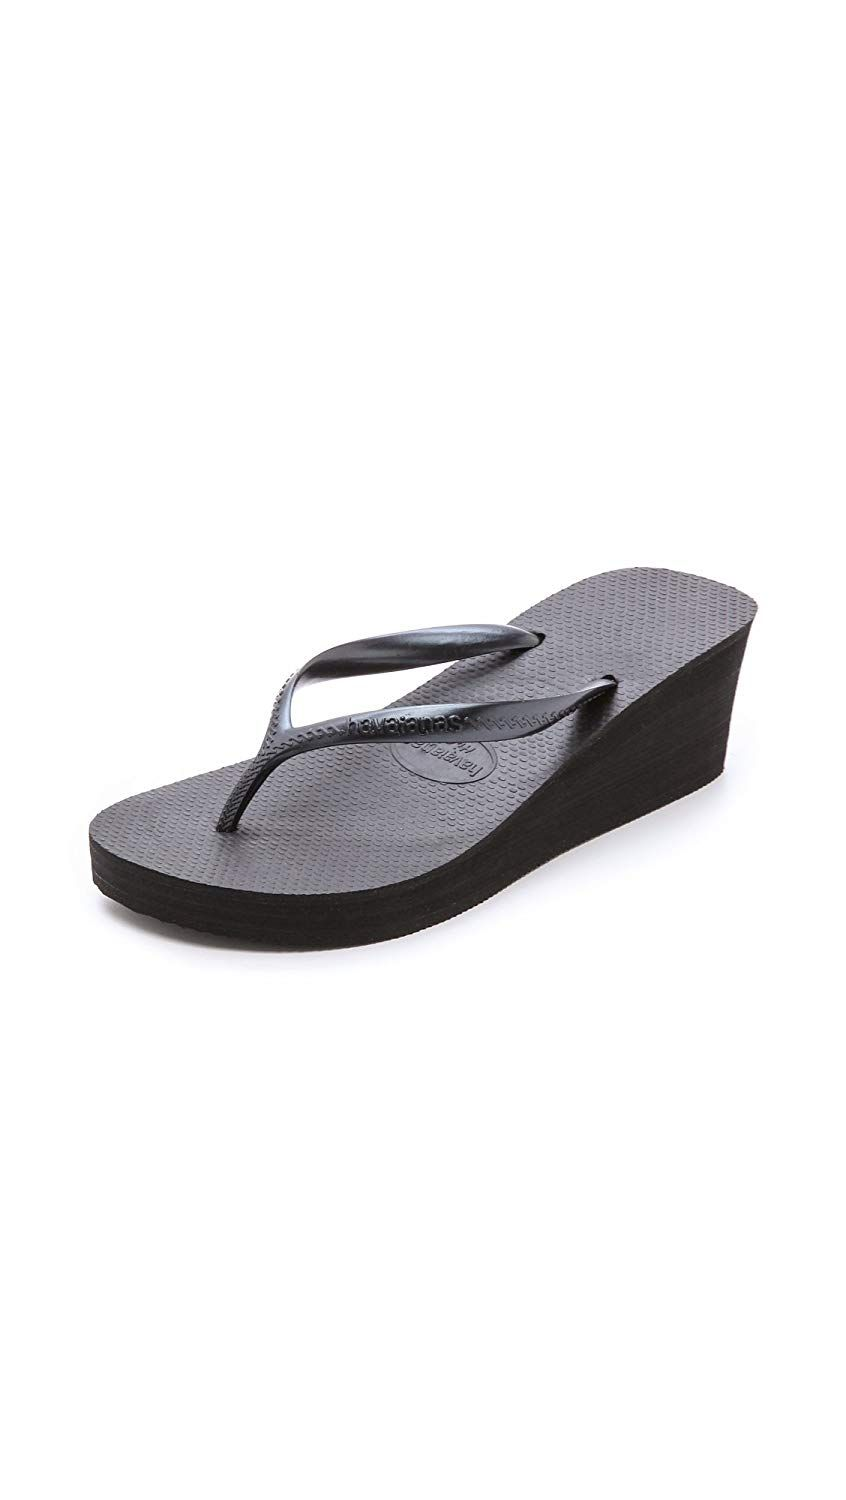 9a57886e5363a Havaianas Women s High Fashion Poem Sandal